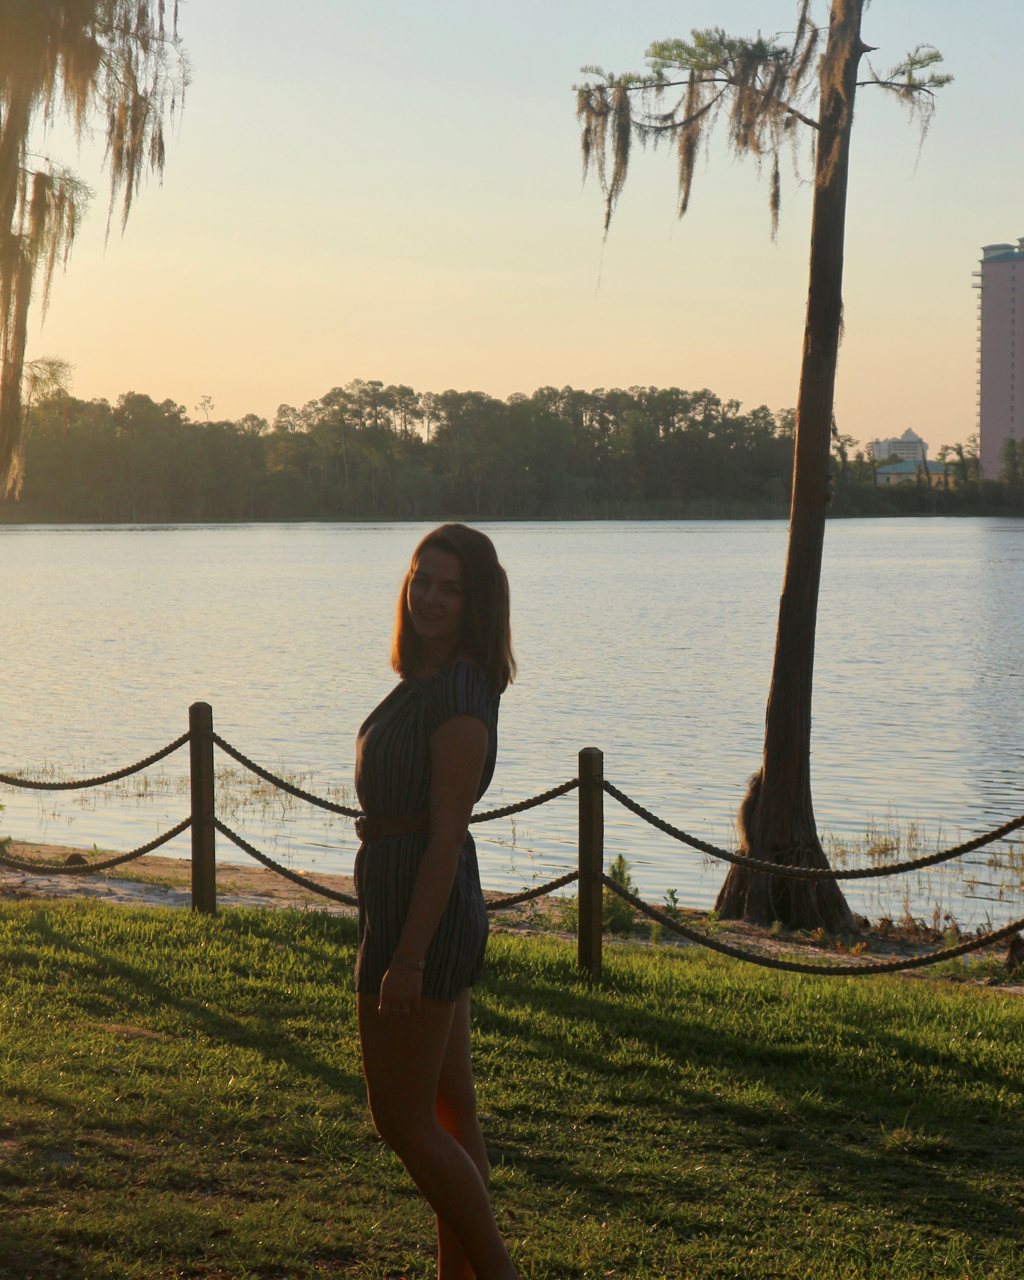 Primark playsuit outfit in Florida